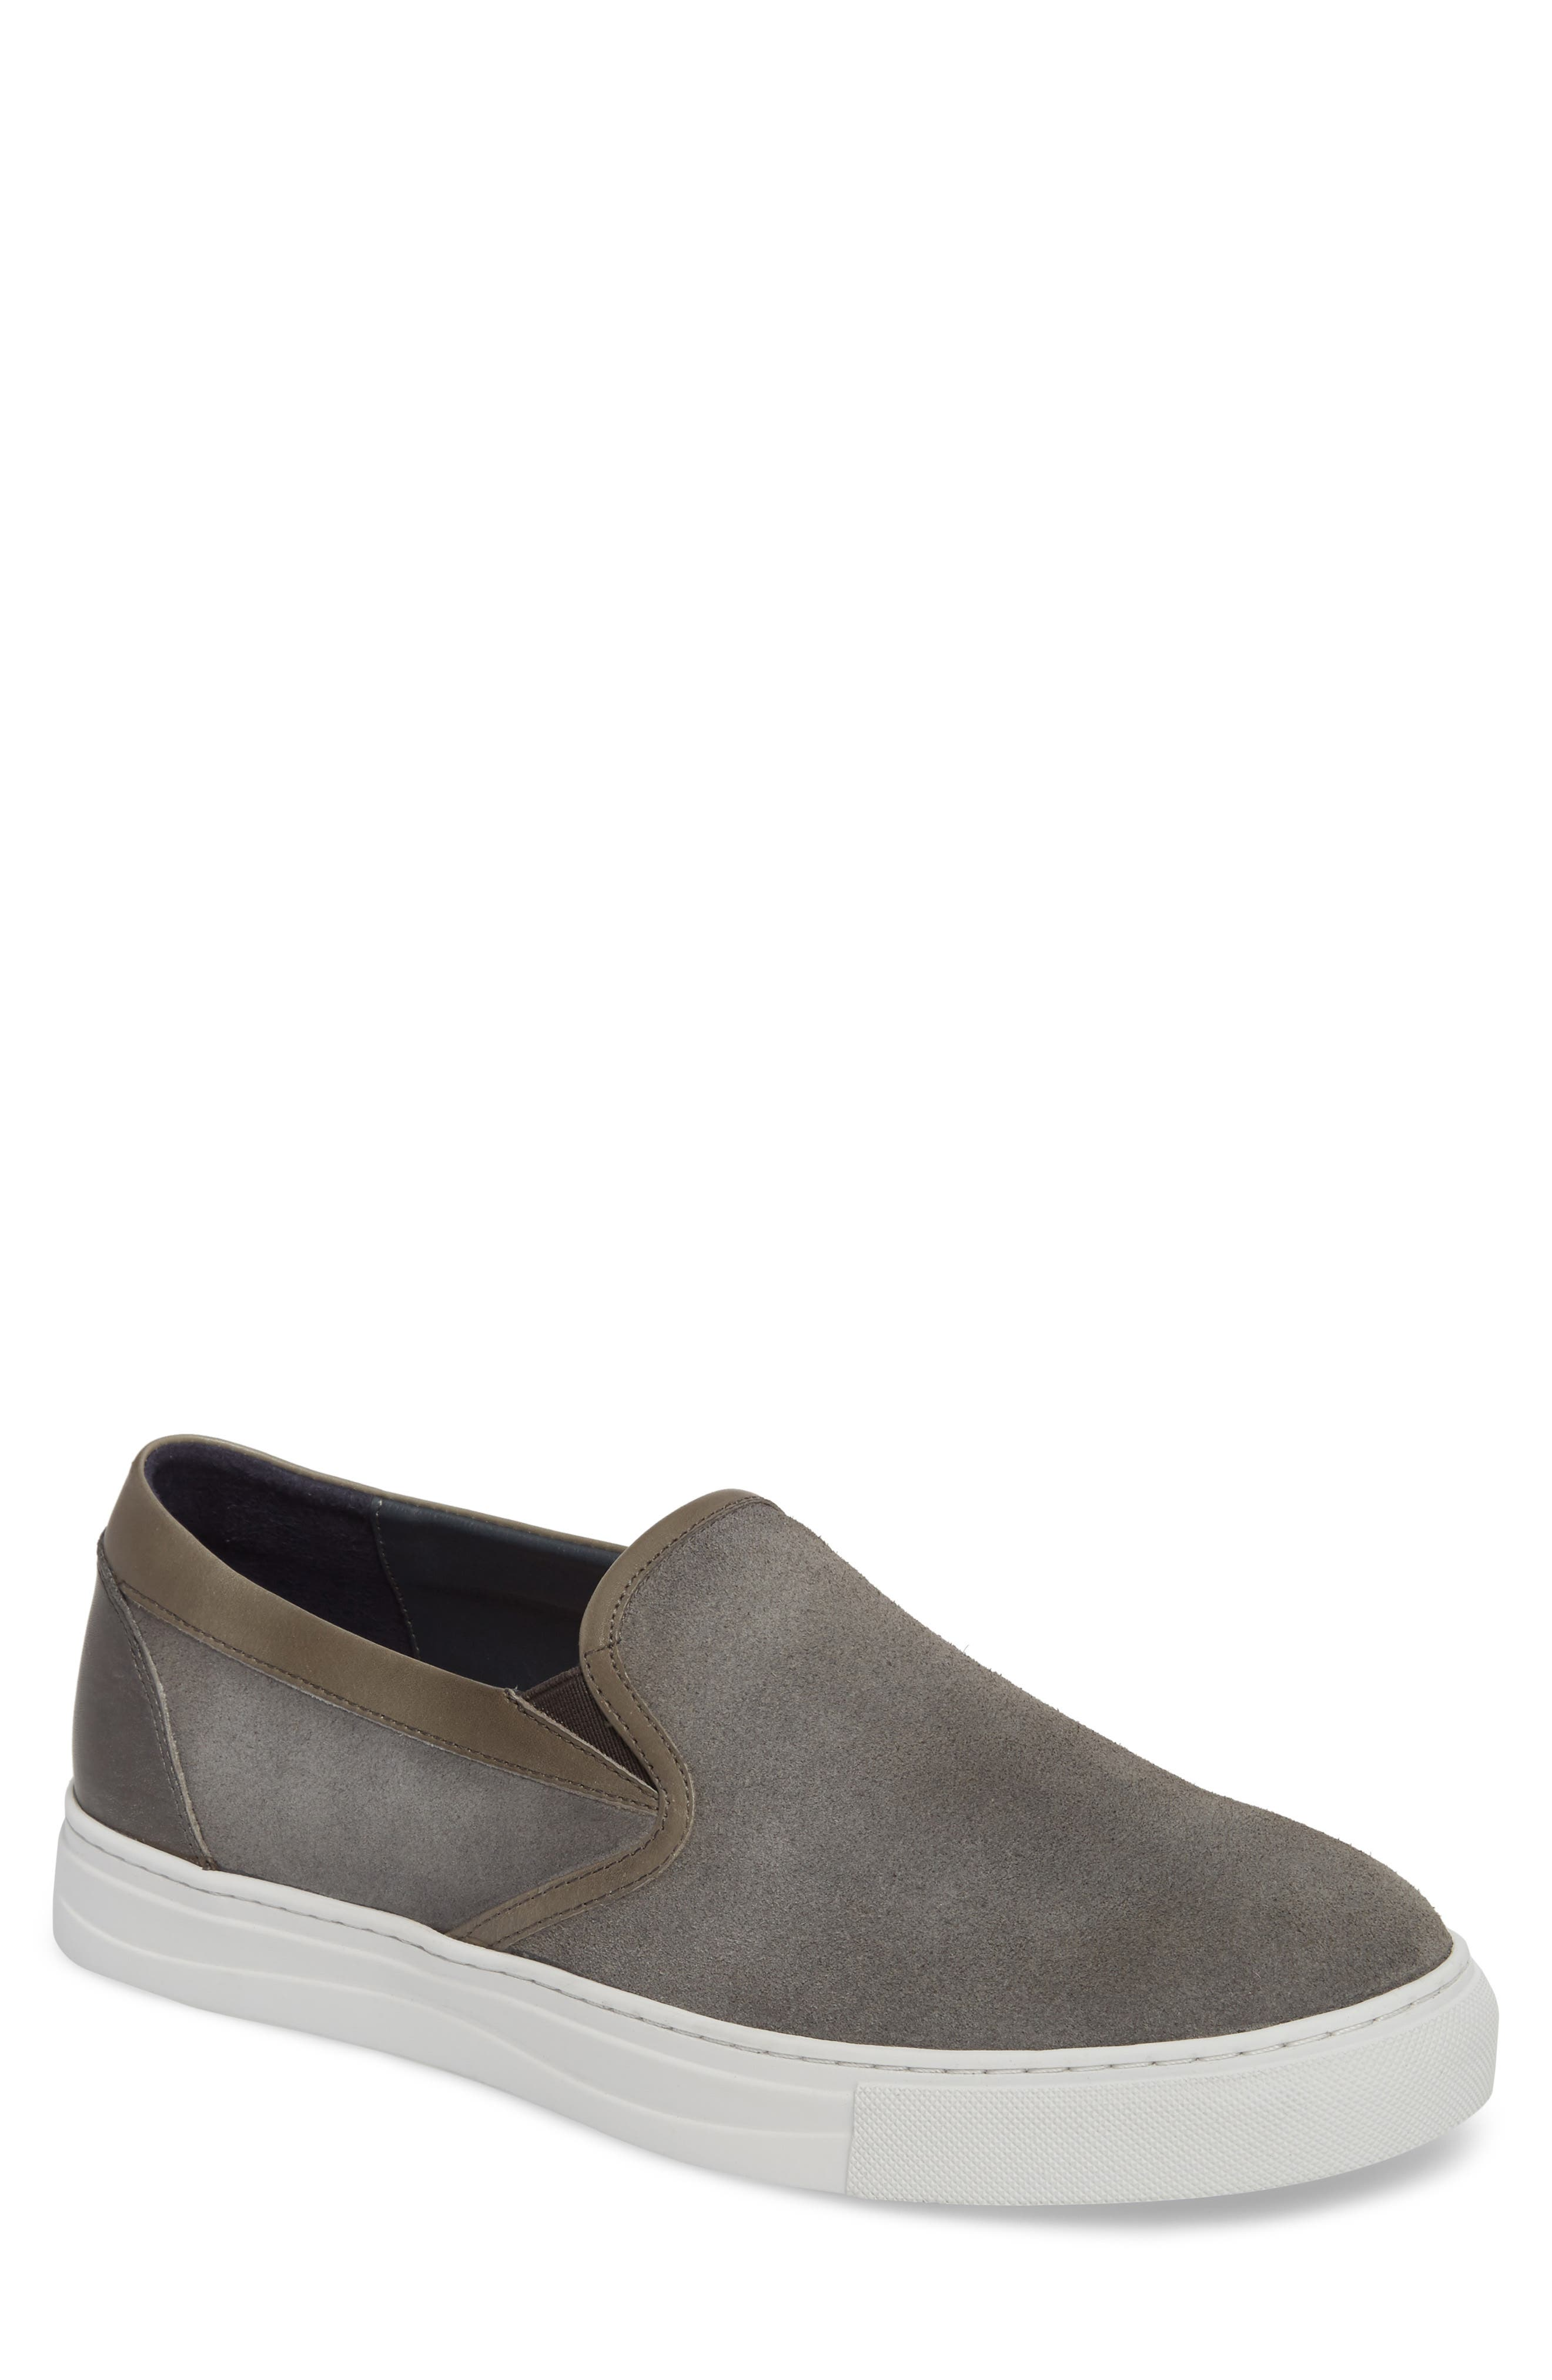 Vane Slip-On Sneaker,                             Main thumbnail 1, color,                             Grey Suede/ Leather